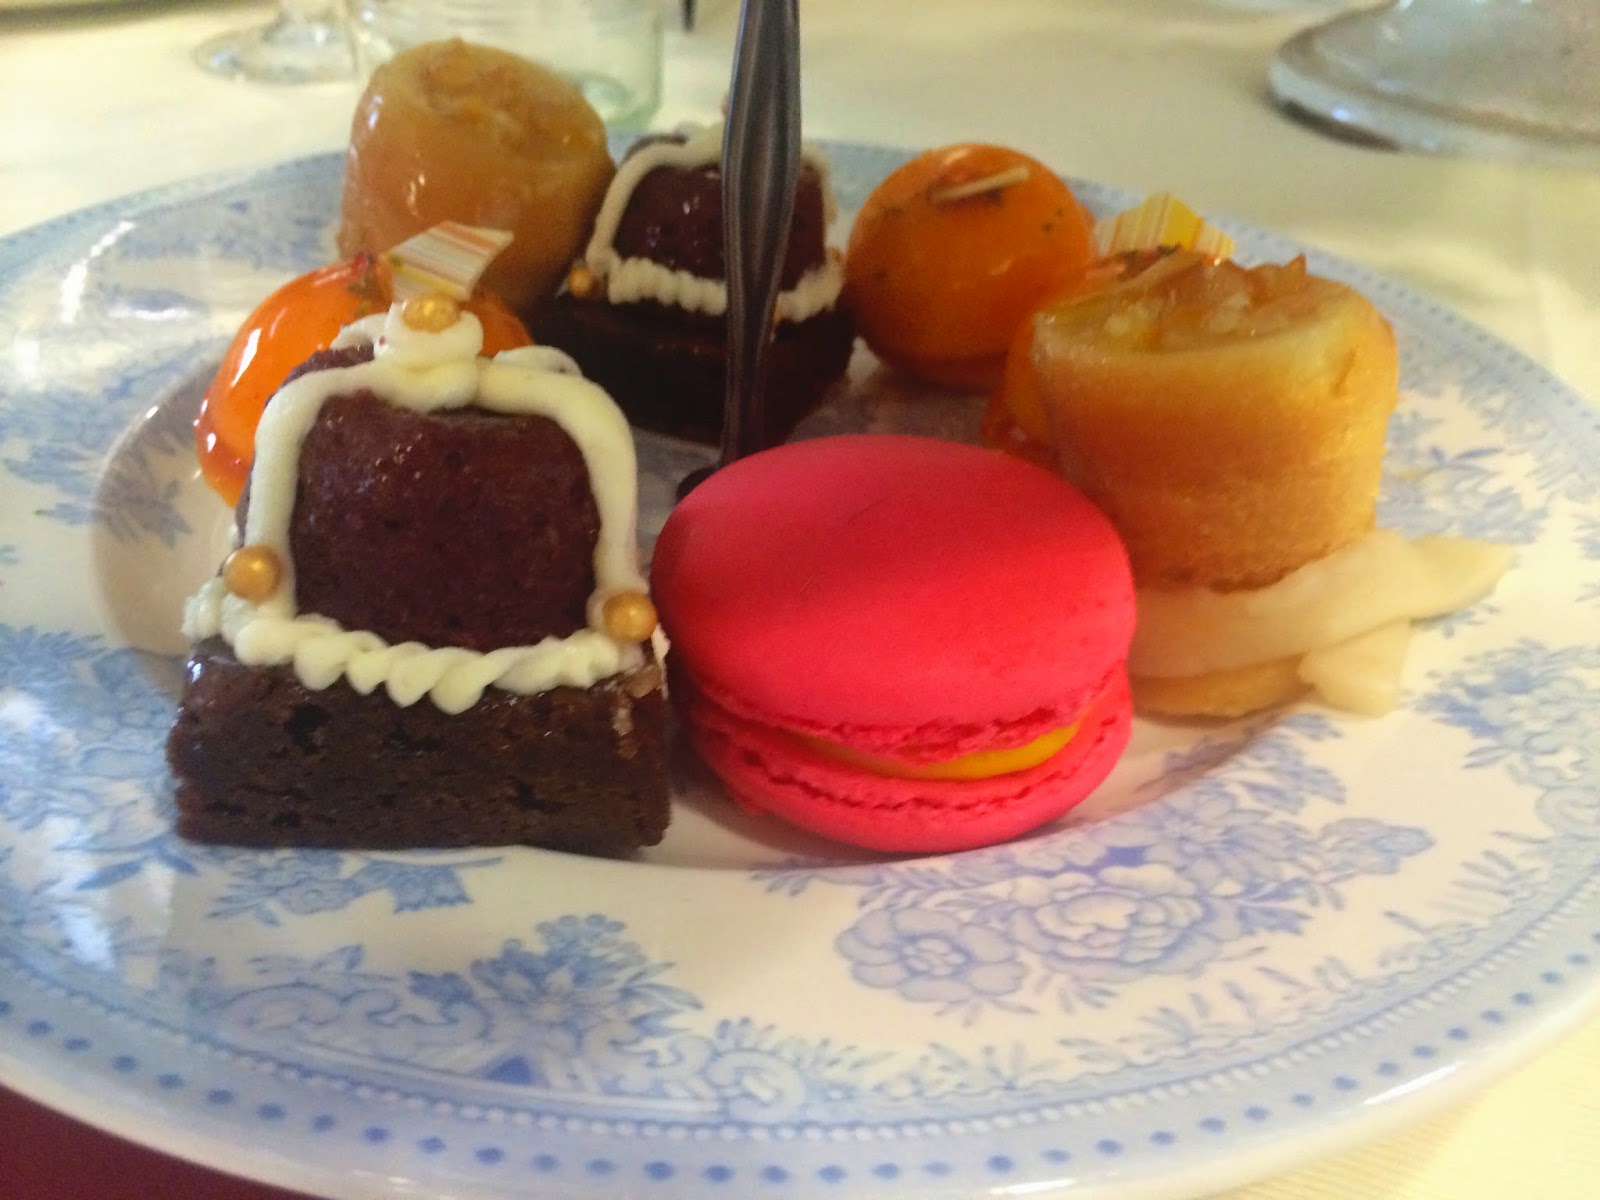 Delicious macaroons, chocolate cake and lemon sponge - Ascot Fine Dining 2015